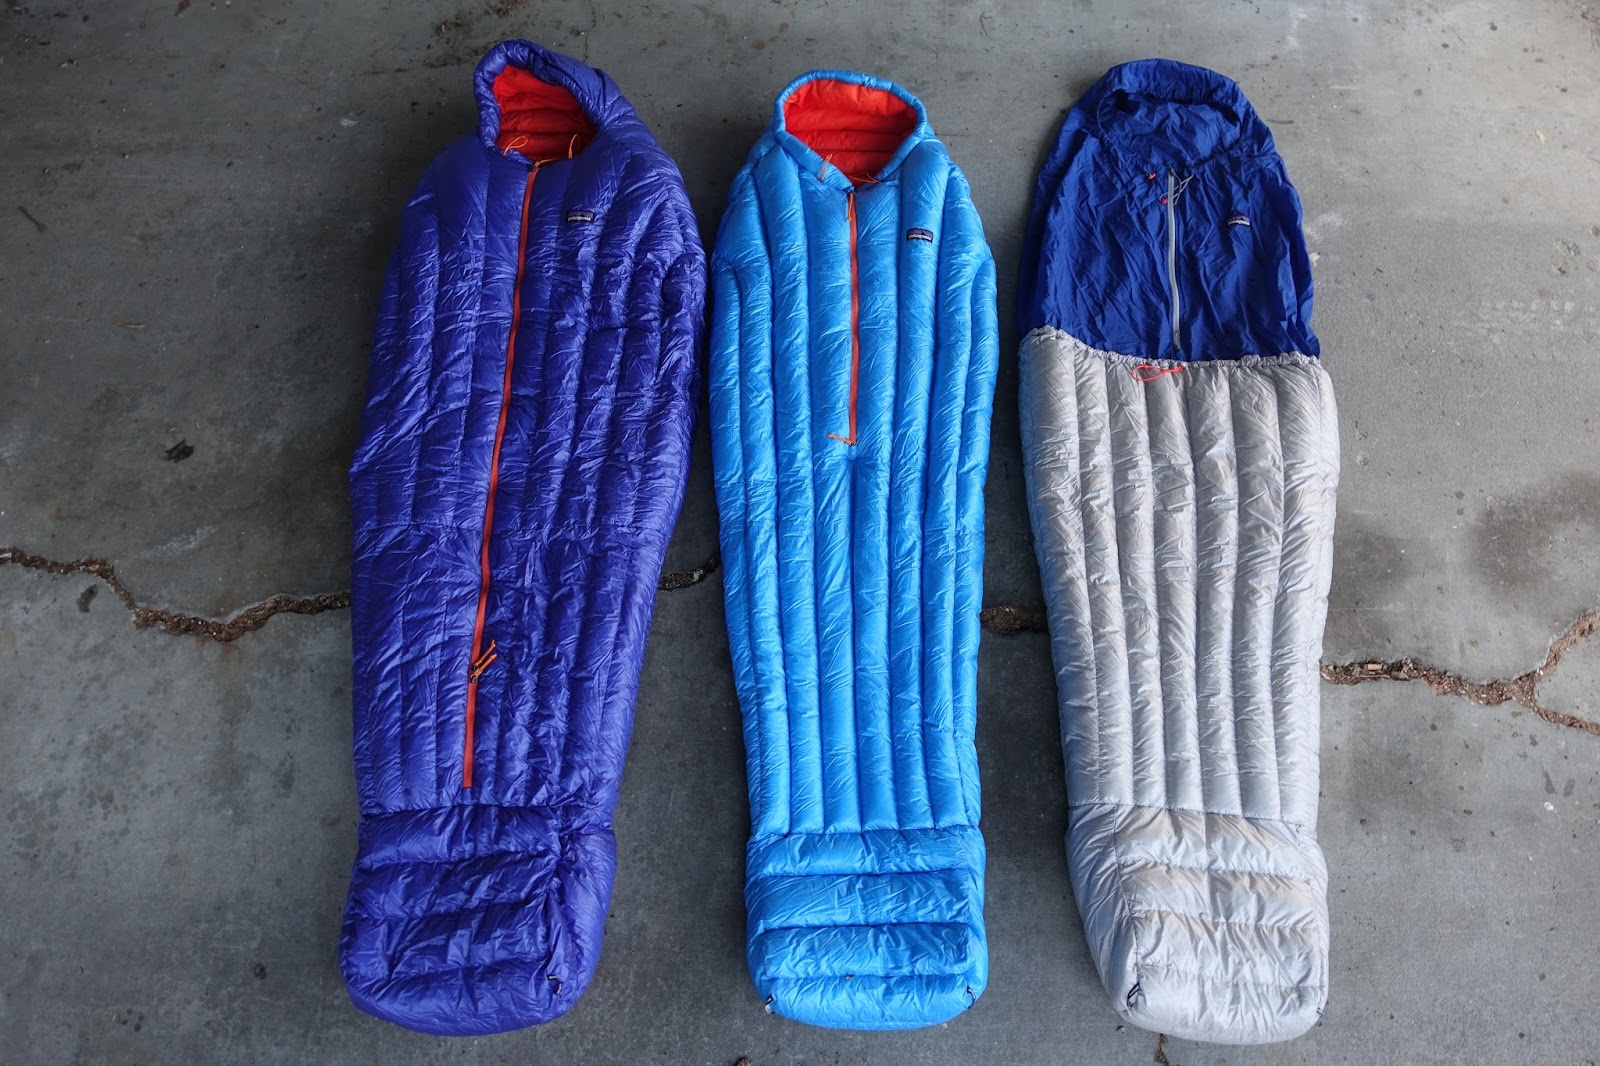 Patagonia Sleeping Bags Left To Right 19 Degree 32 9 Oz 30 26 5 And Hybrid 17 3